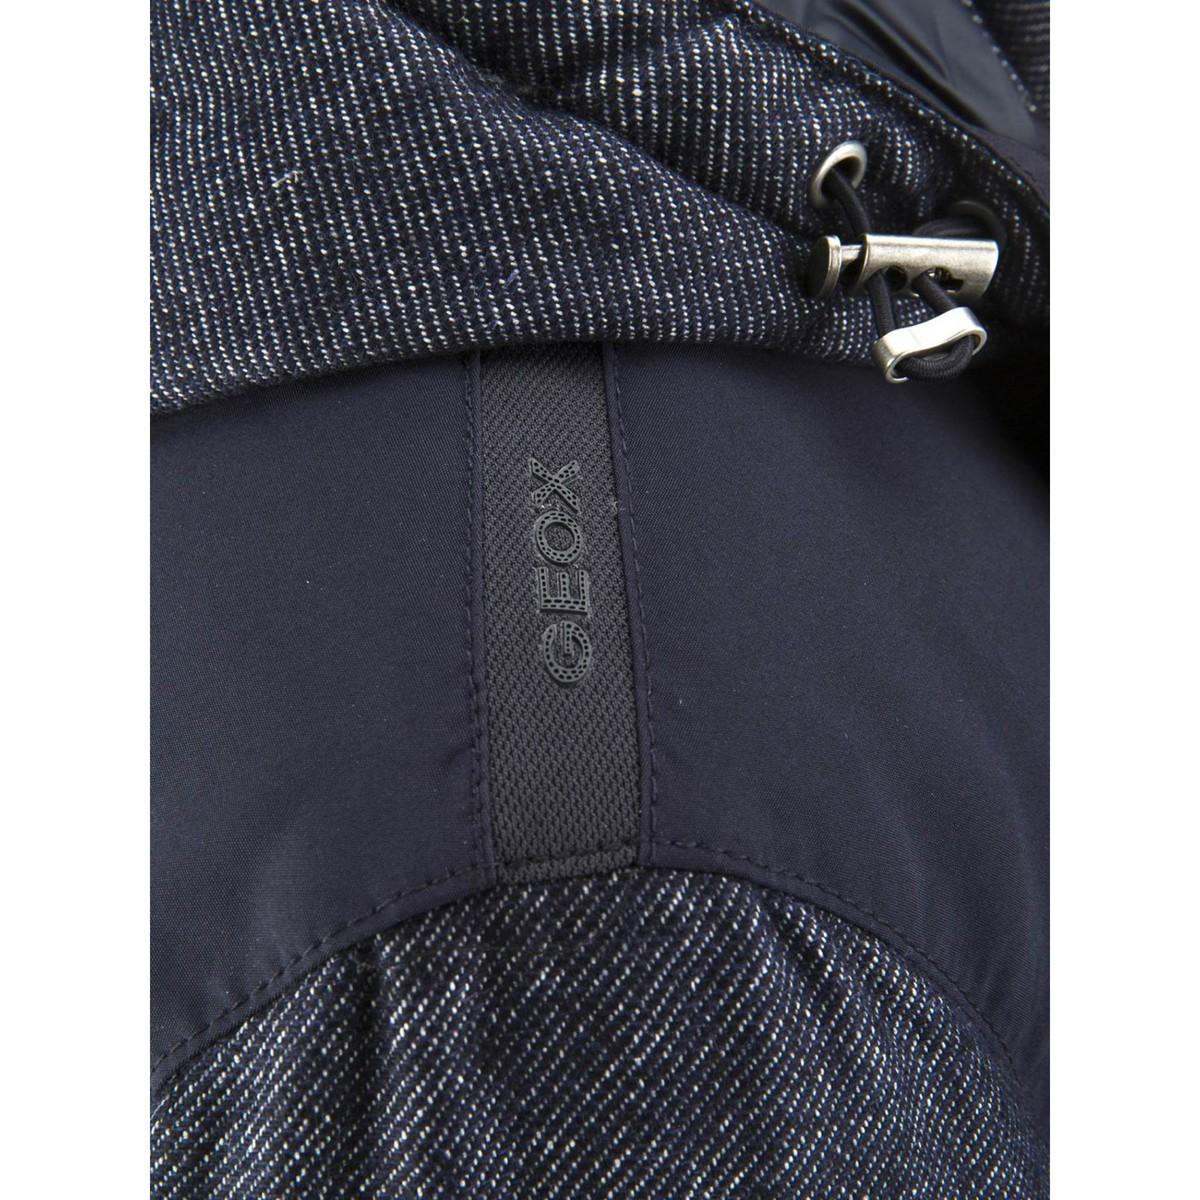 Geox M6425q Tc080 Man Men's Tracksuit Jacket In Other in Blue for Men